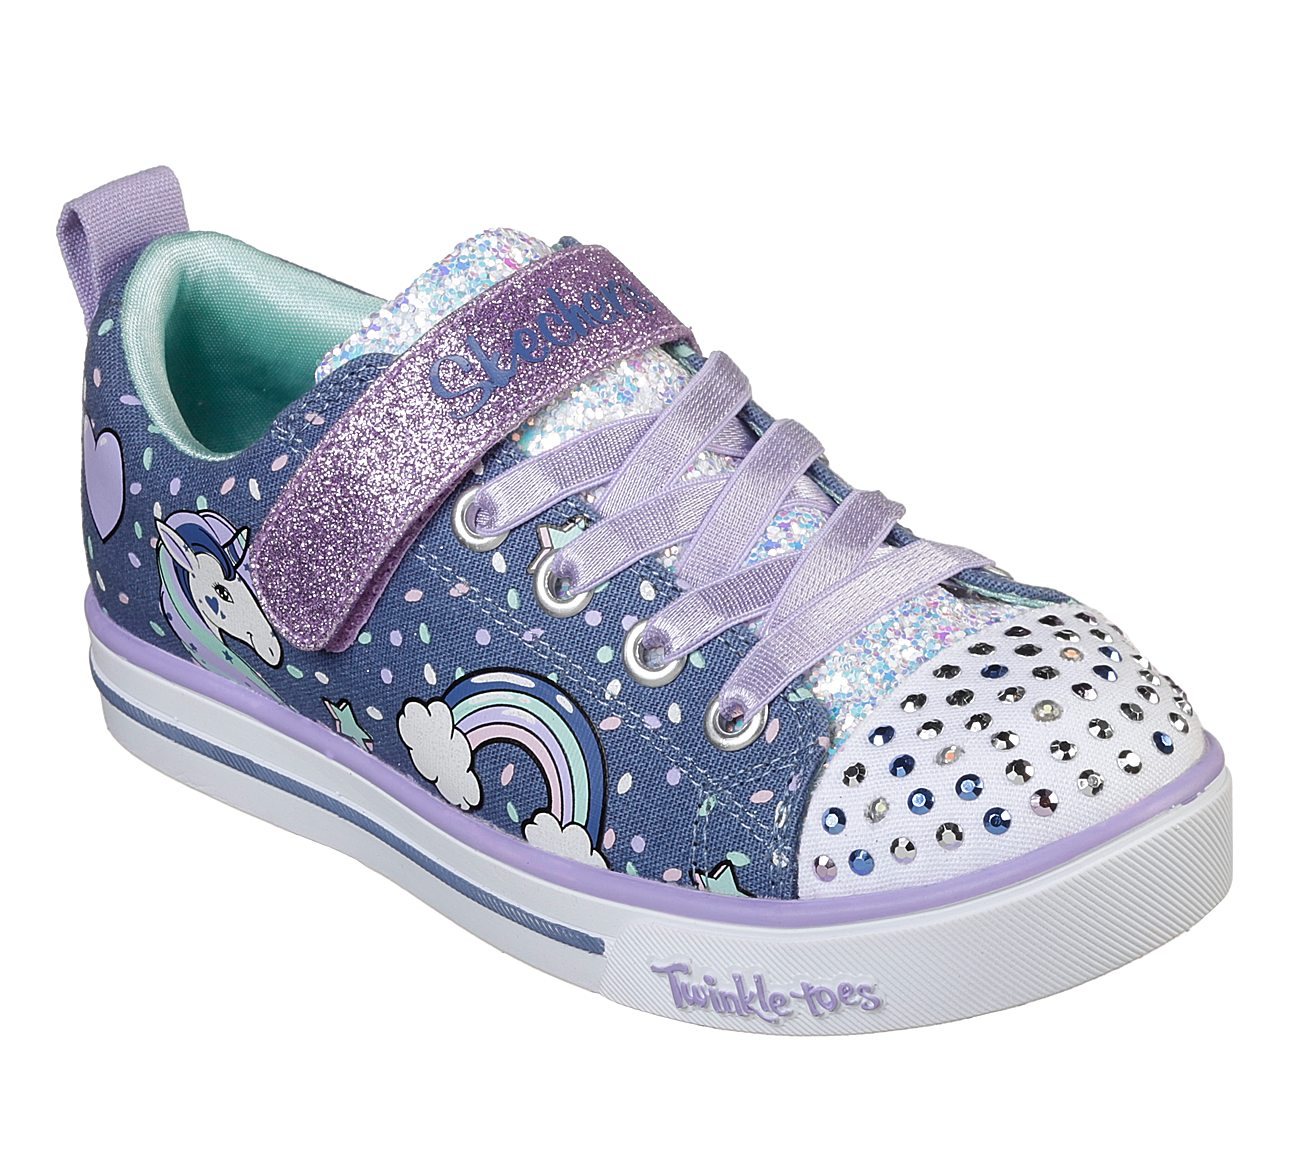 a95ff69ad3d8 Buy SKECHERS Twinkle Toes  Shuffles - Sparkle Lite S-Lights Shoes only   42.00